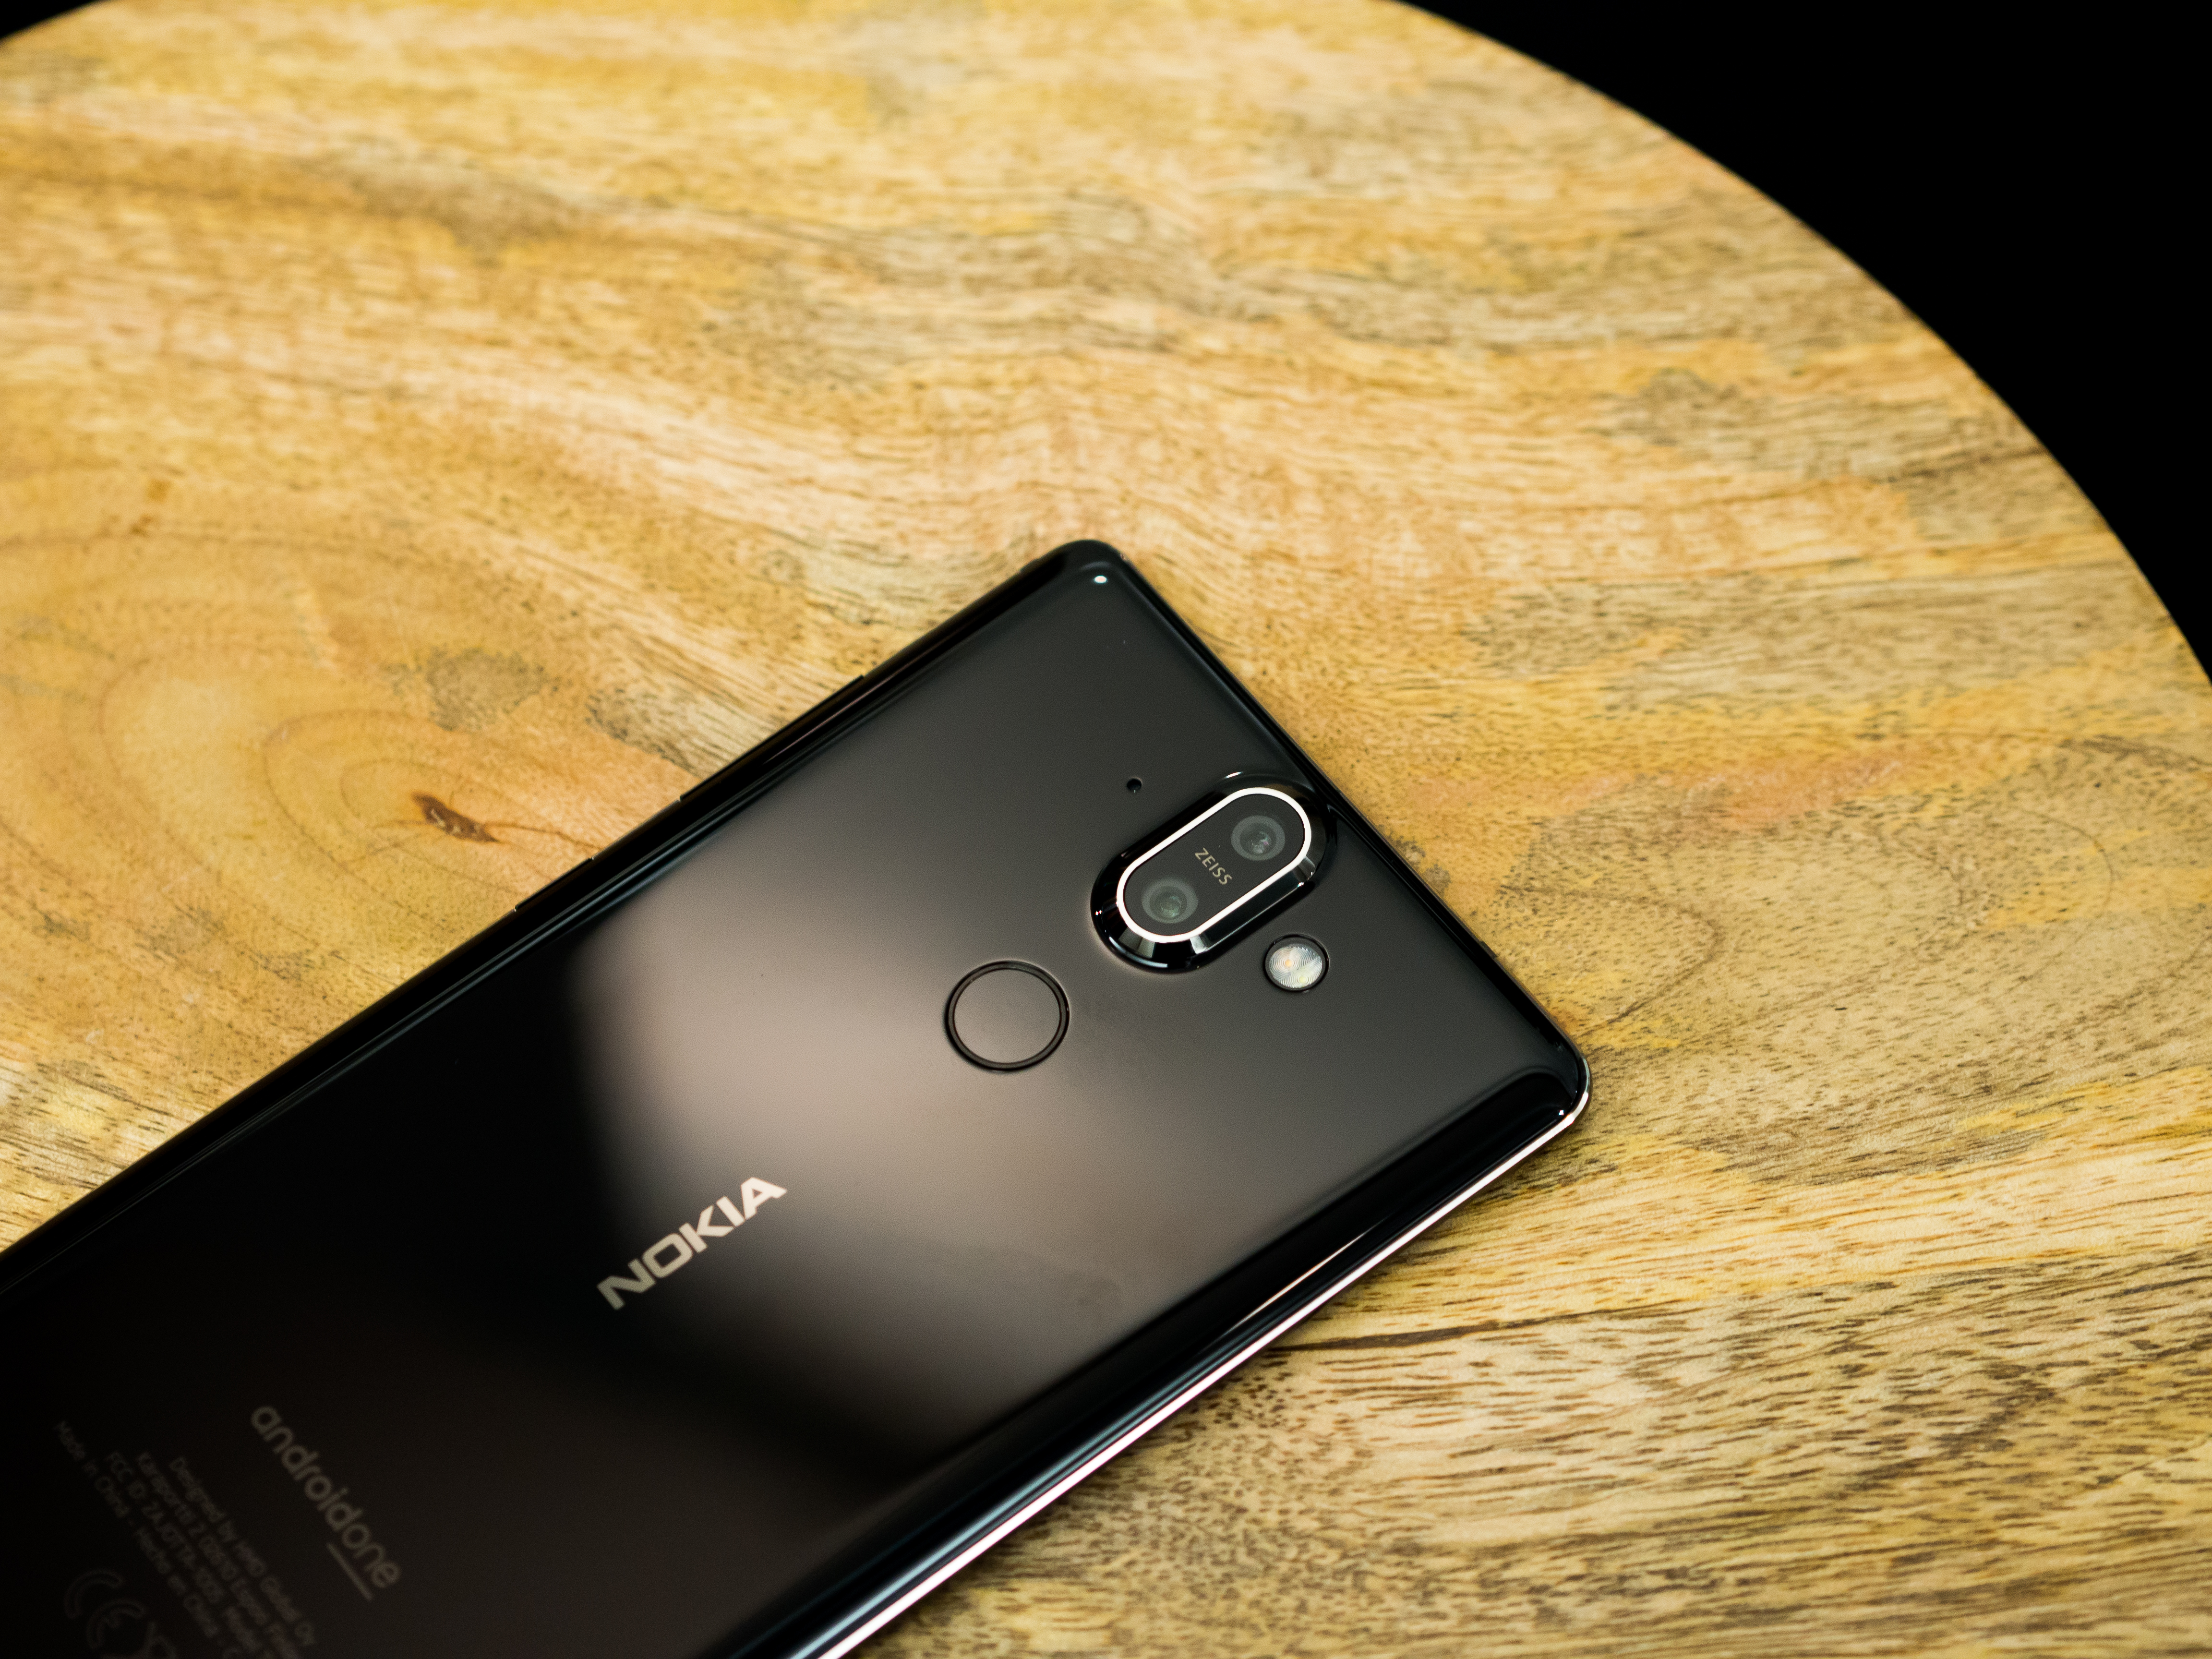 Hands On With The Nokia 1 6 2018 7 Plus And 8 Xl Yellow Curved Glass Edges Are Symmetrical Front To Back Meeting A 2mm Wide Chamfer Side I Cant Say It Feels That Comfortable In Hand